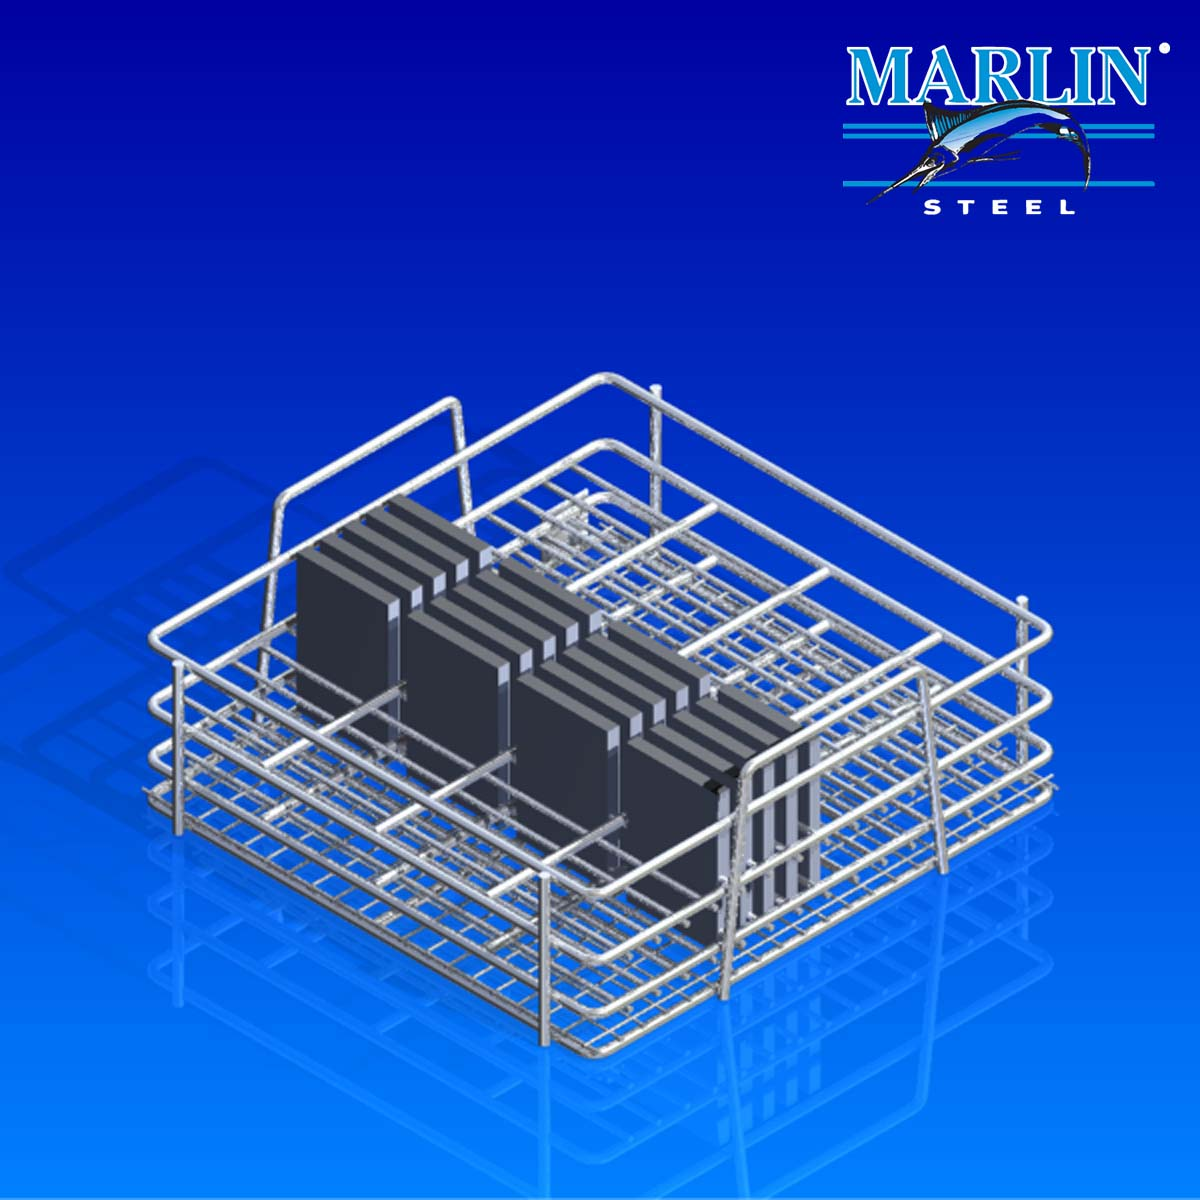 Marlin Steel Material Handling Basket with Handles 876001